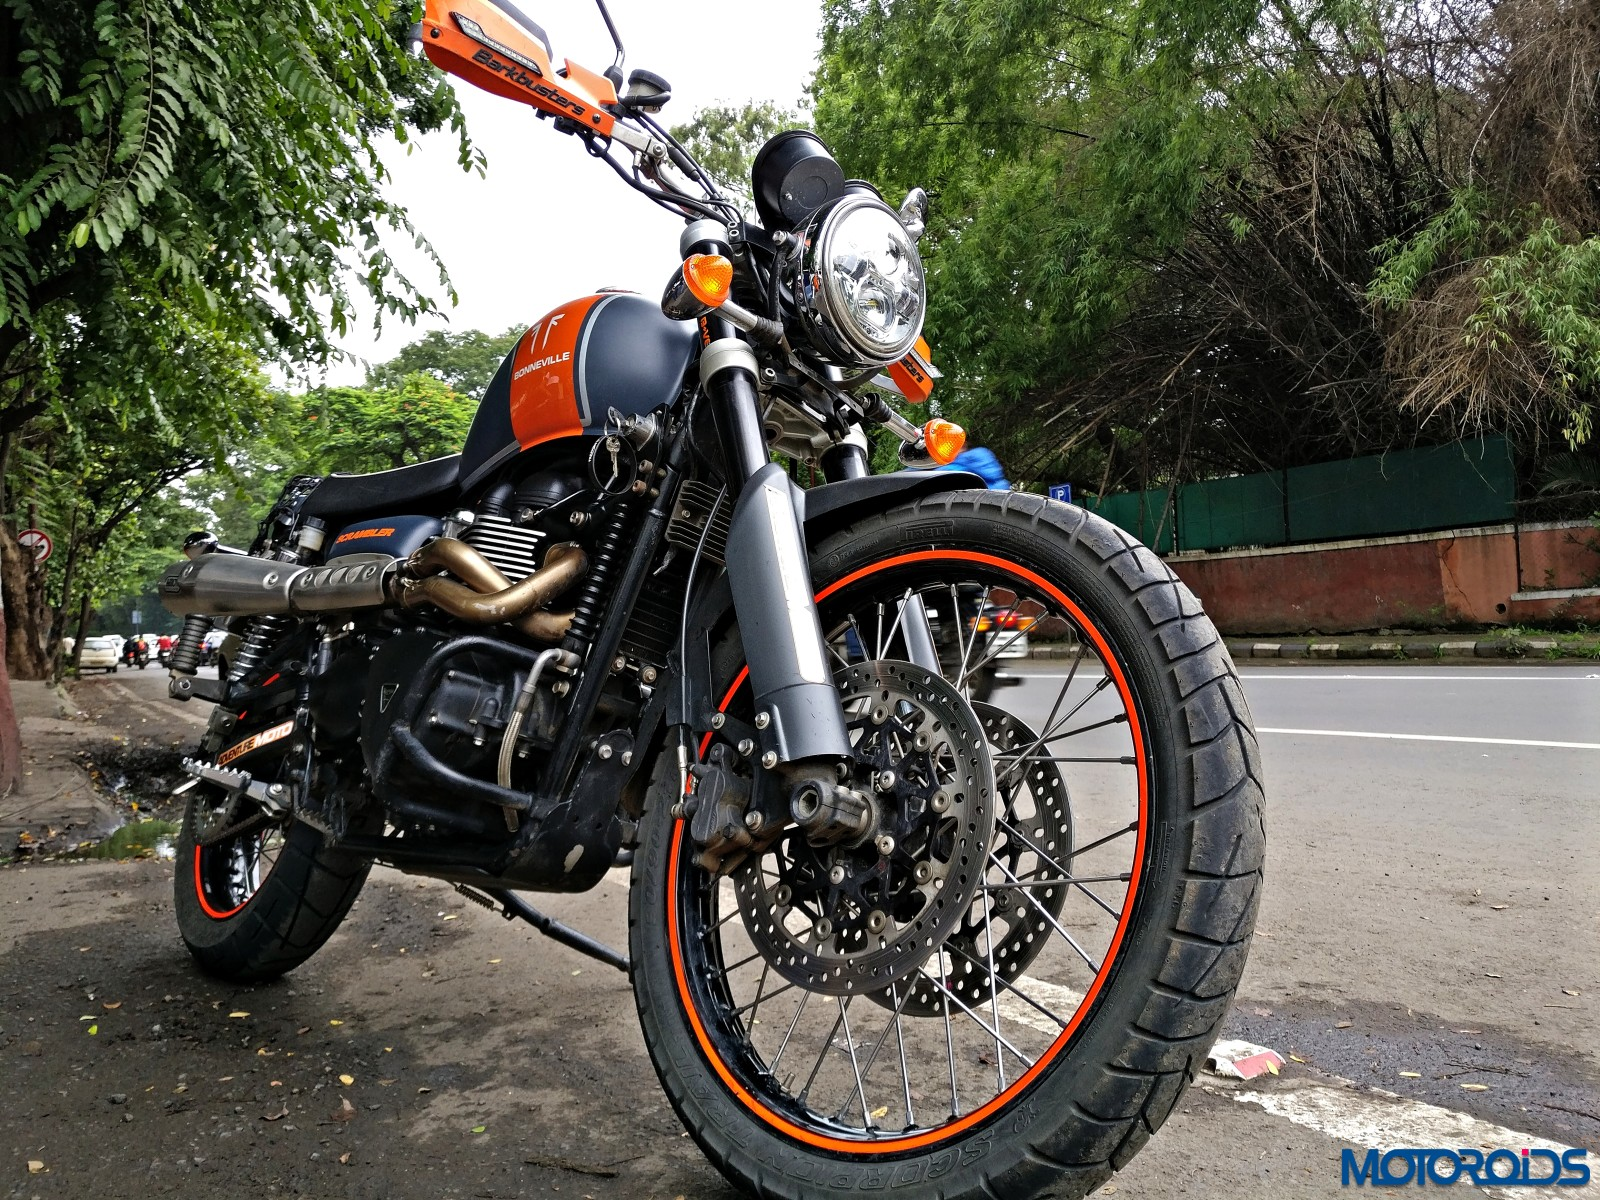 Customised Triumph Scrambler - Triumph Pune (19)